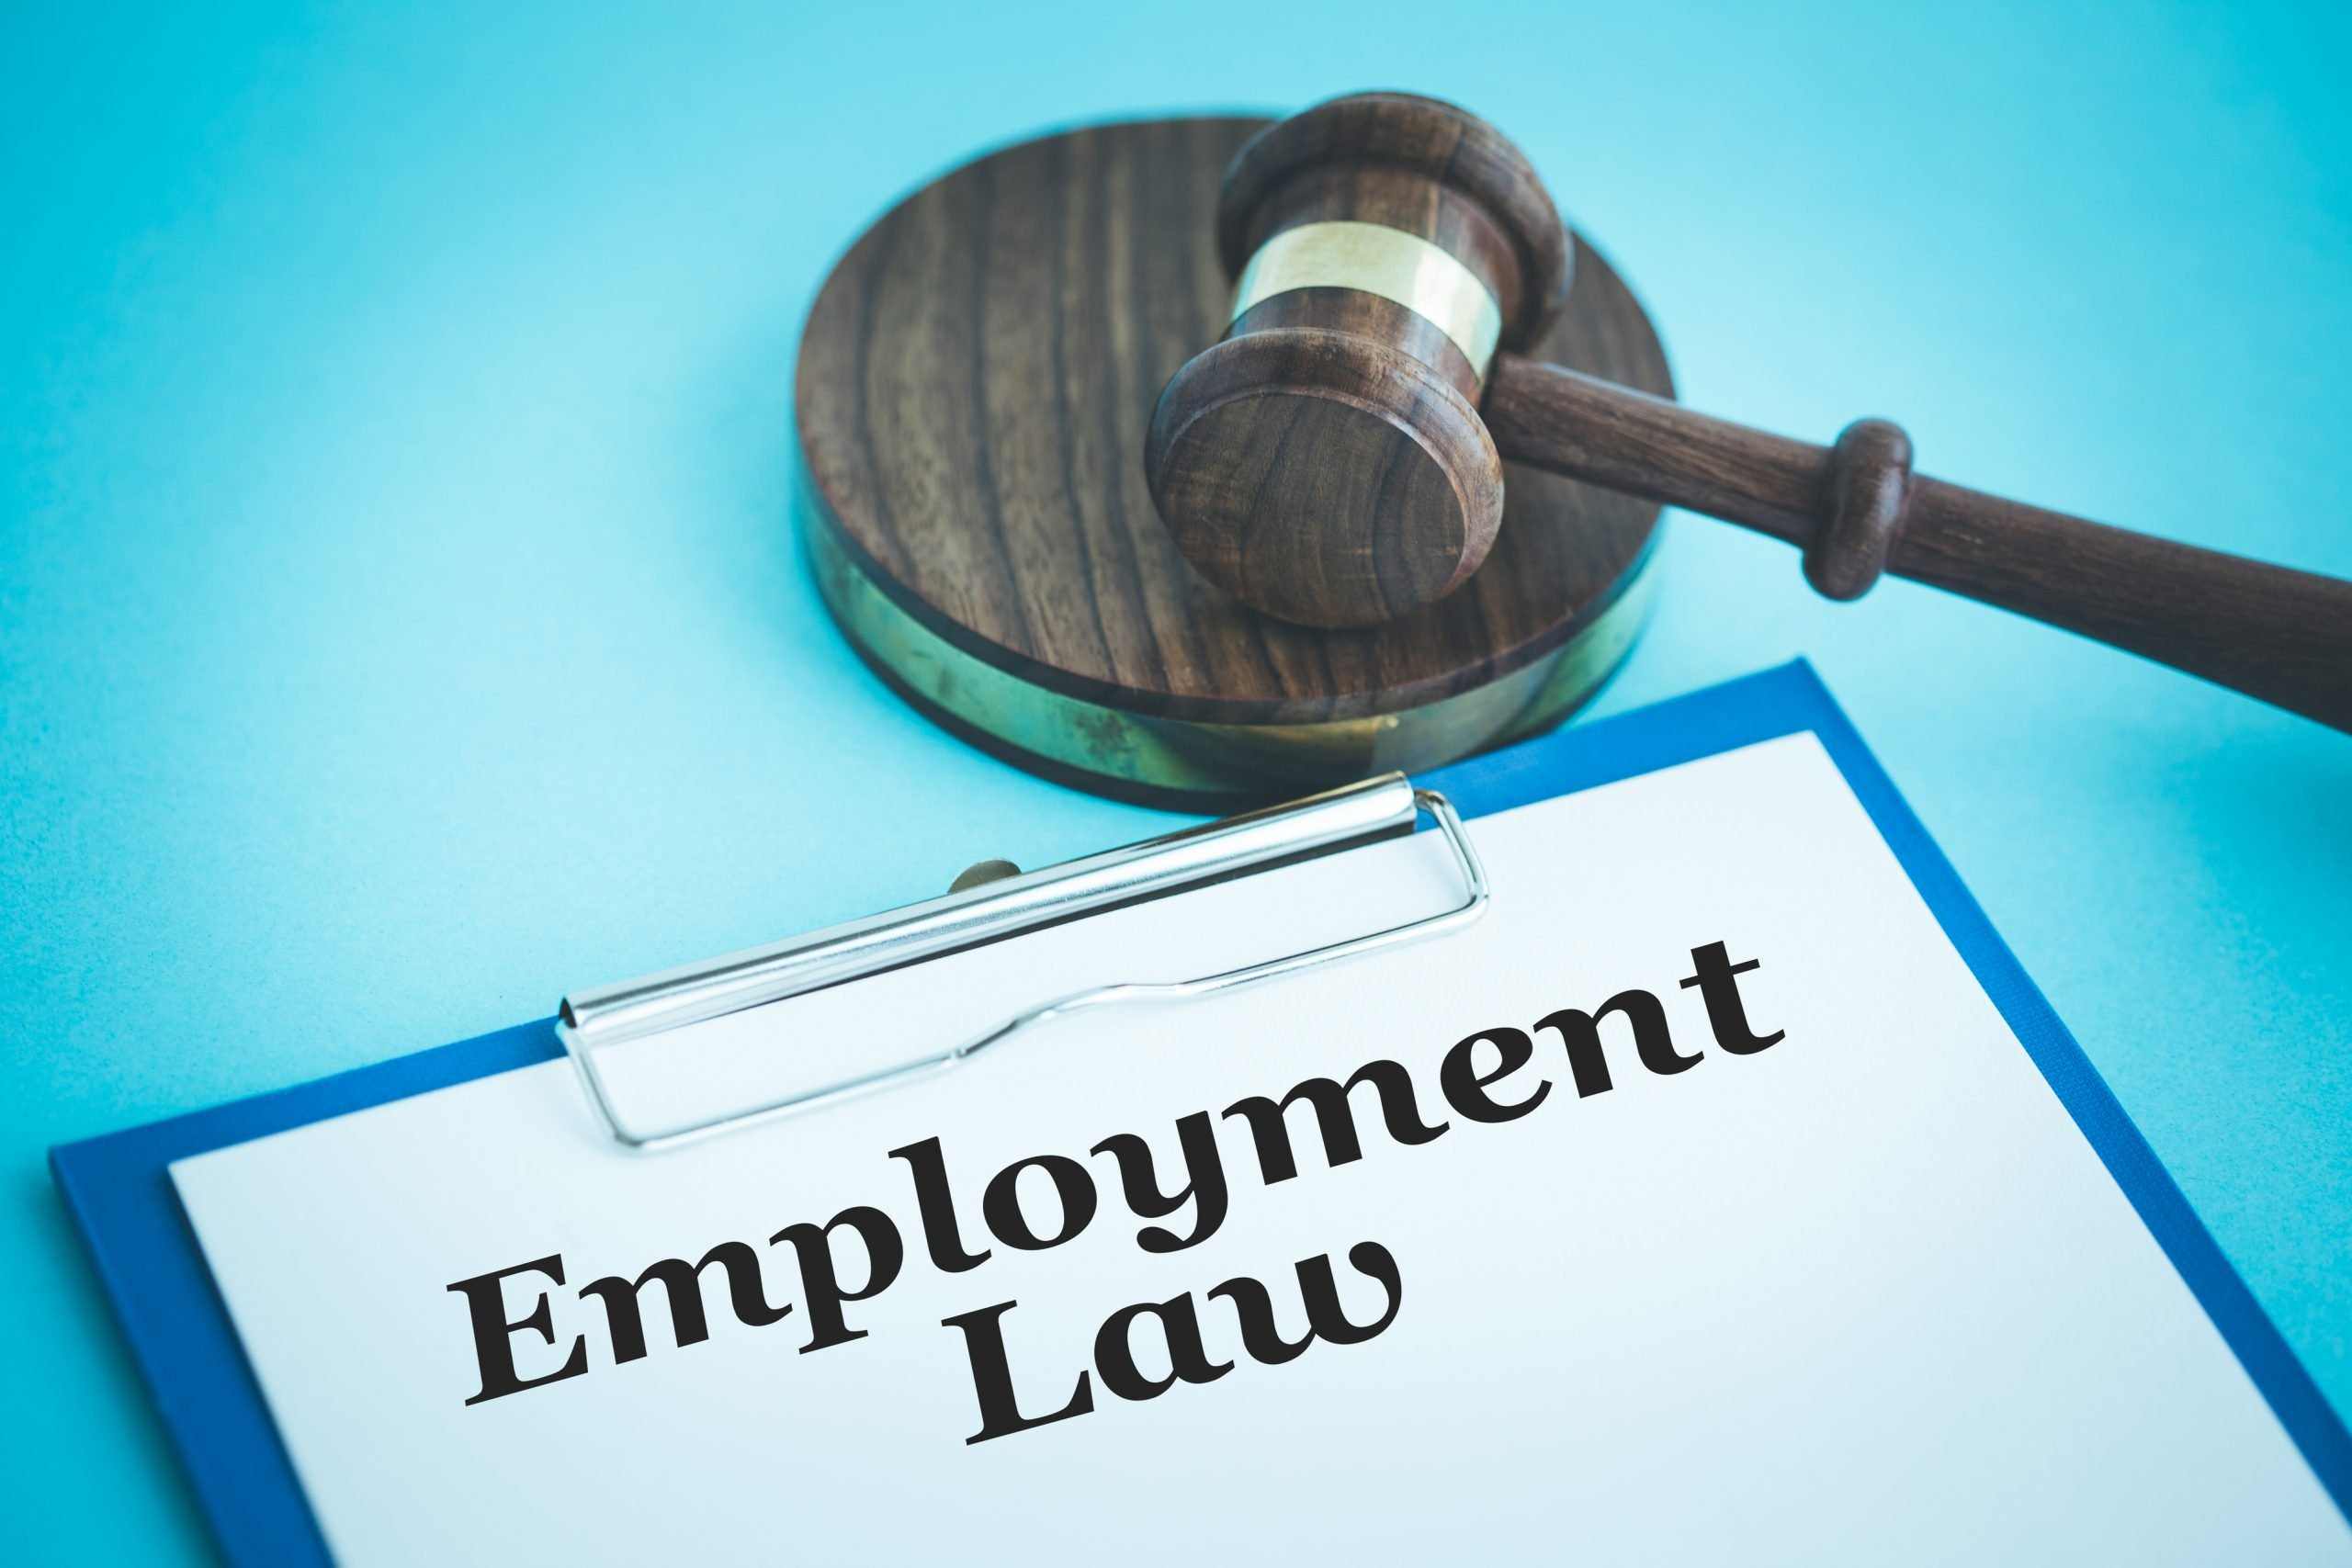 menopause and employment law, menopause at work, menopause in the workplace, menopause symptoms, reasonable adjustments